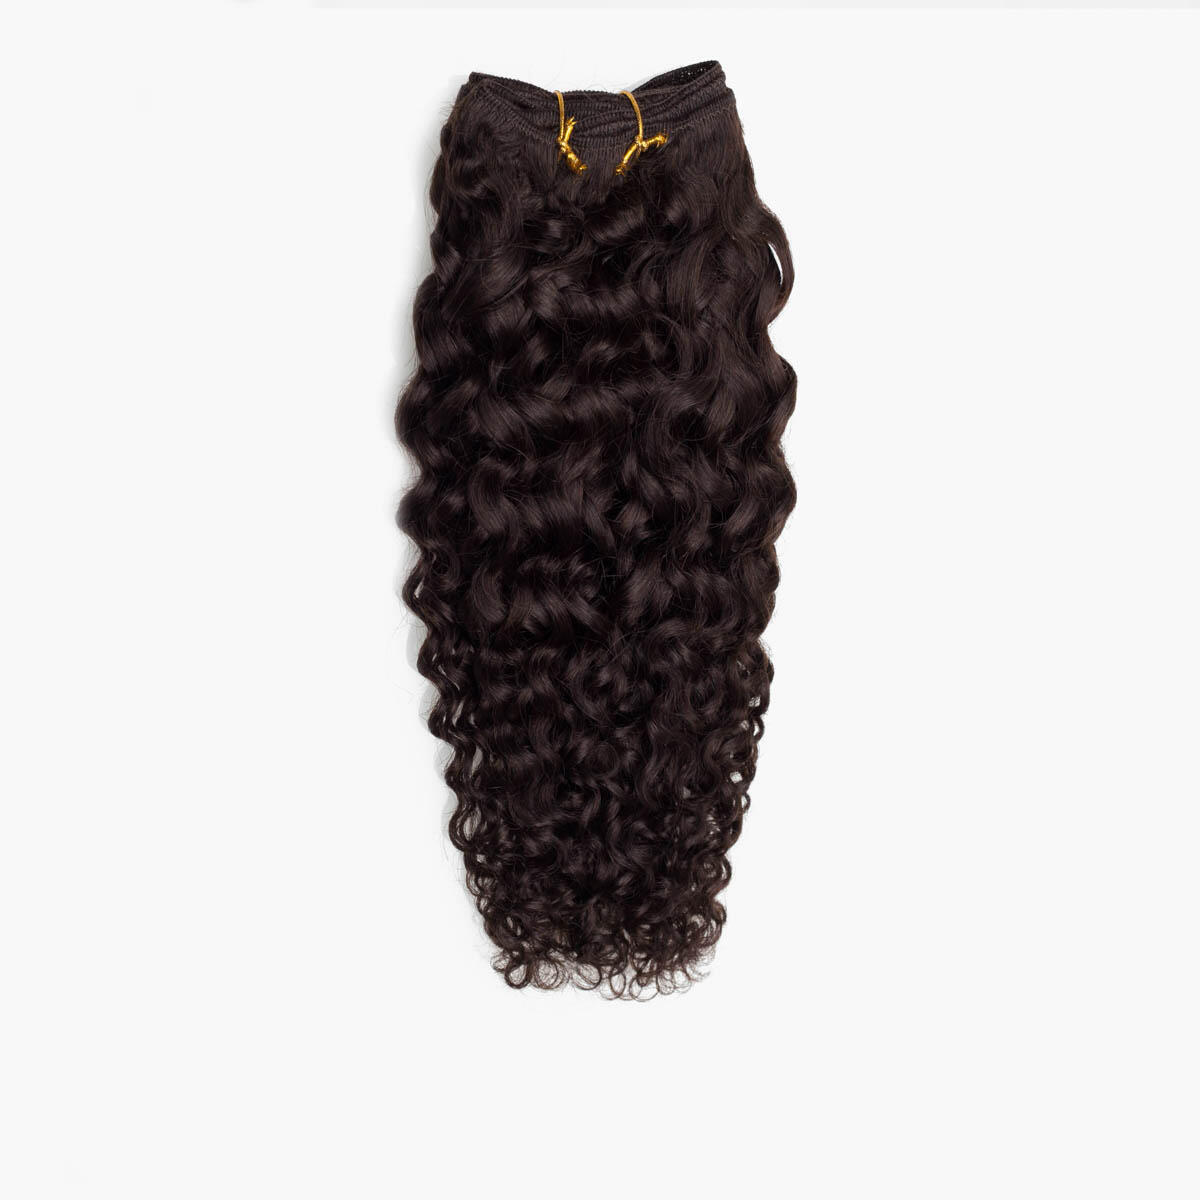 Hair Weft Curly Curls 2.3 Chocolate Brown 35 cm